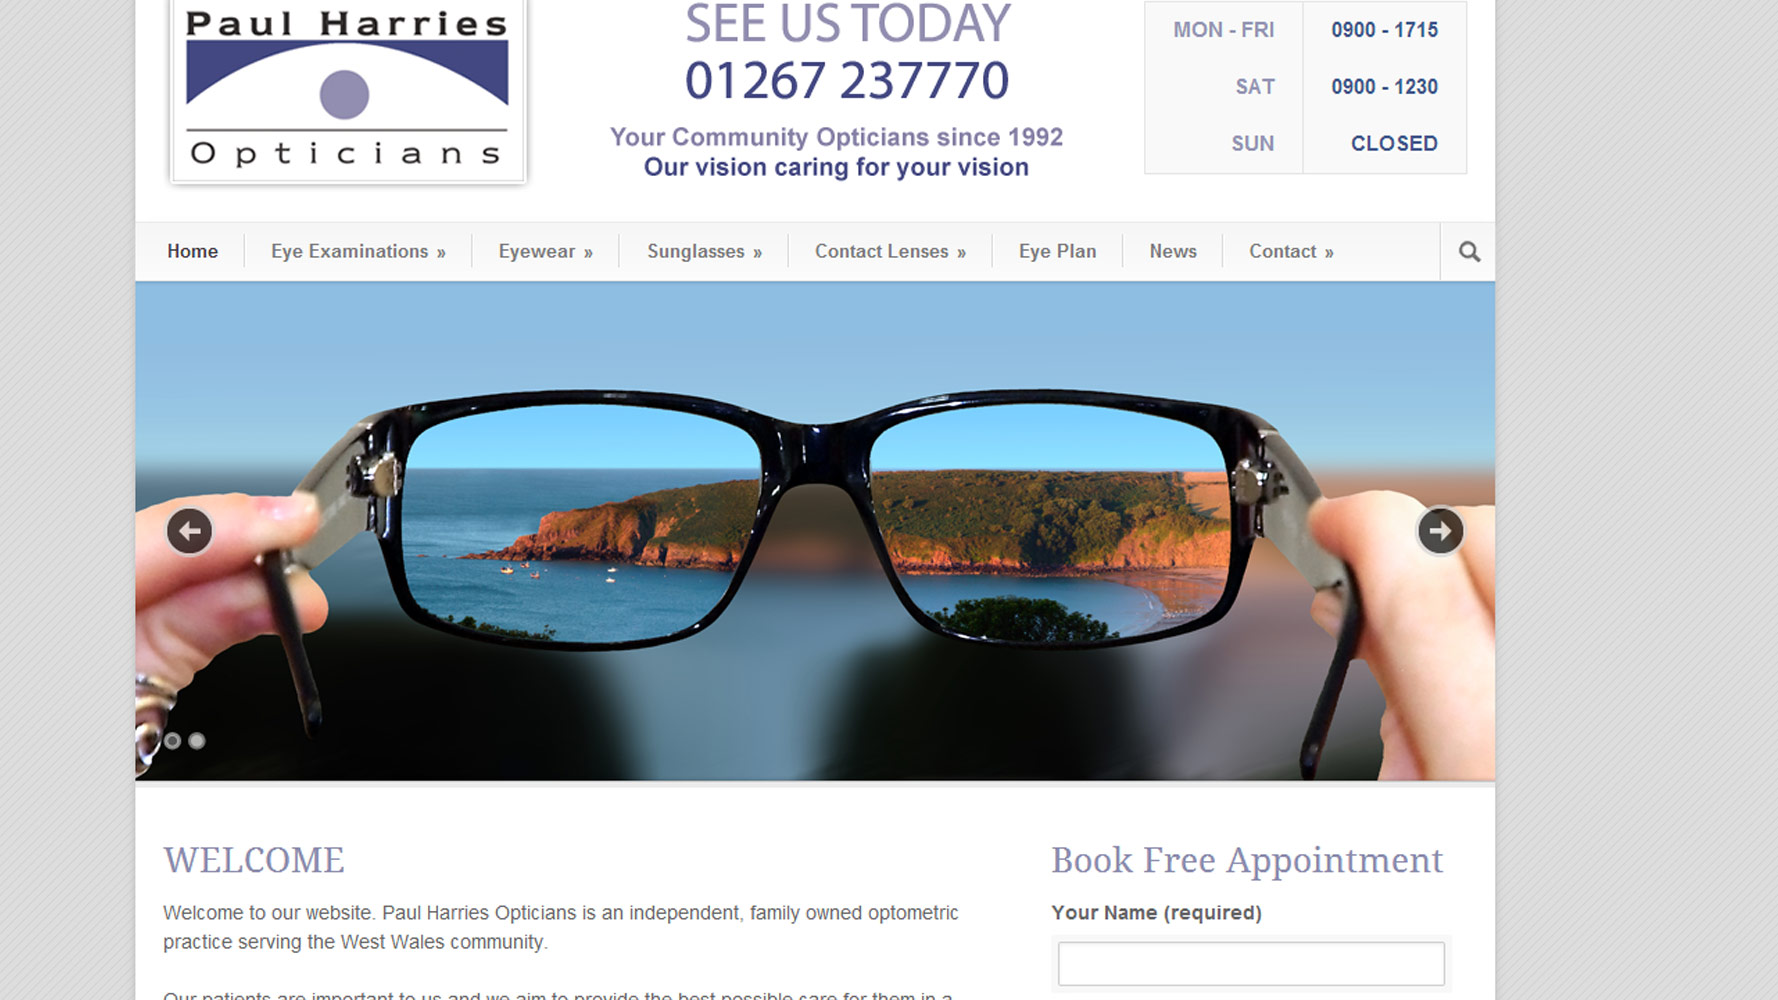 Paul harries Opticians Homepage web Design by Web Adept